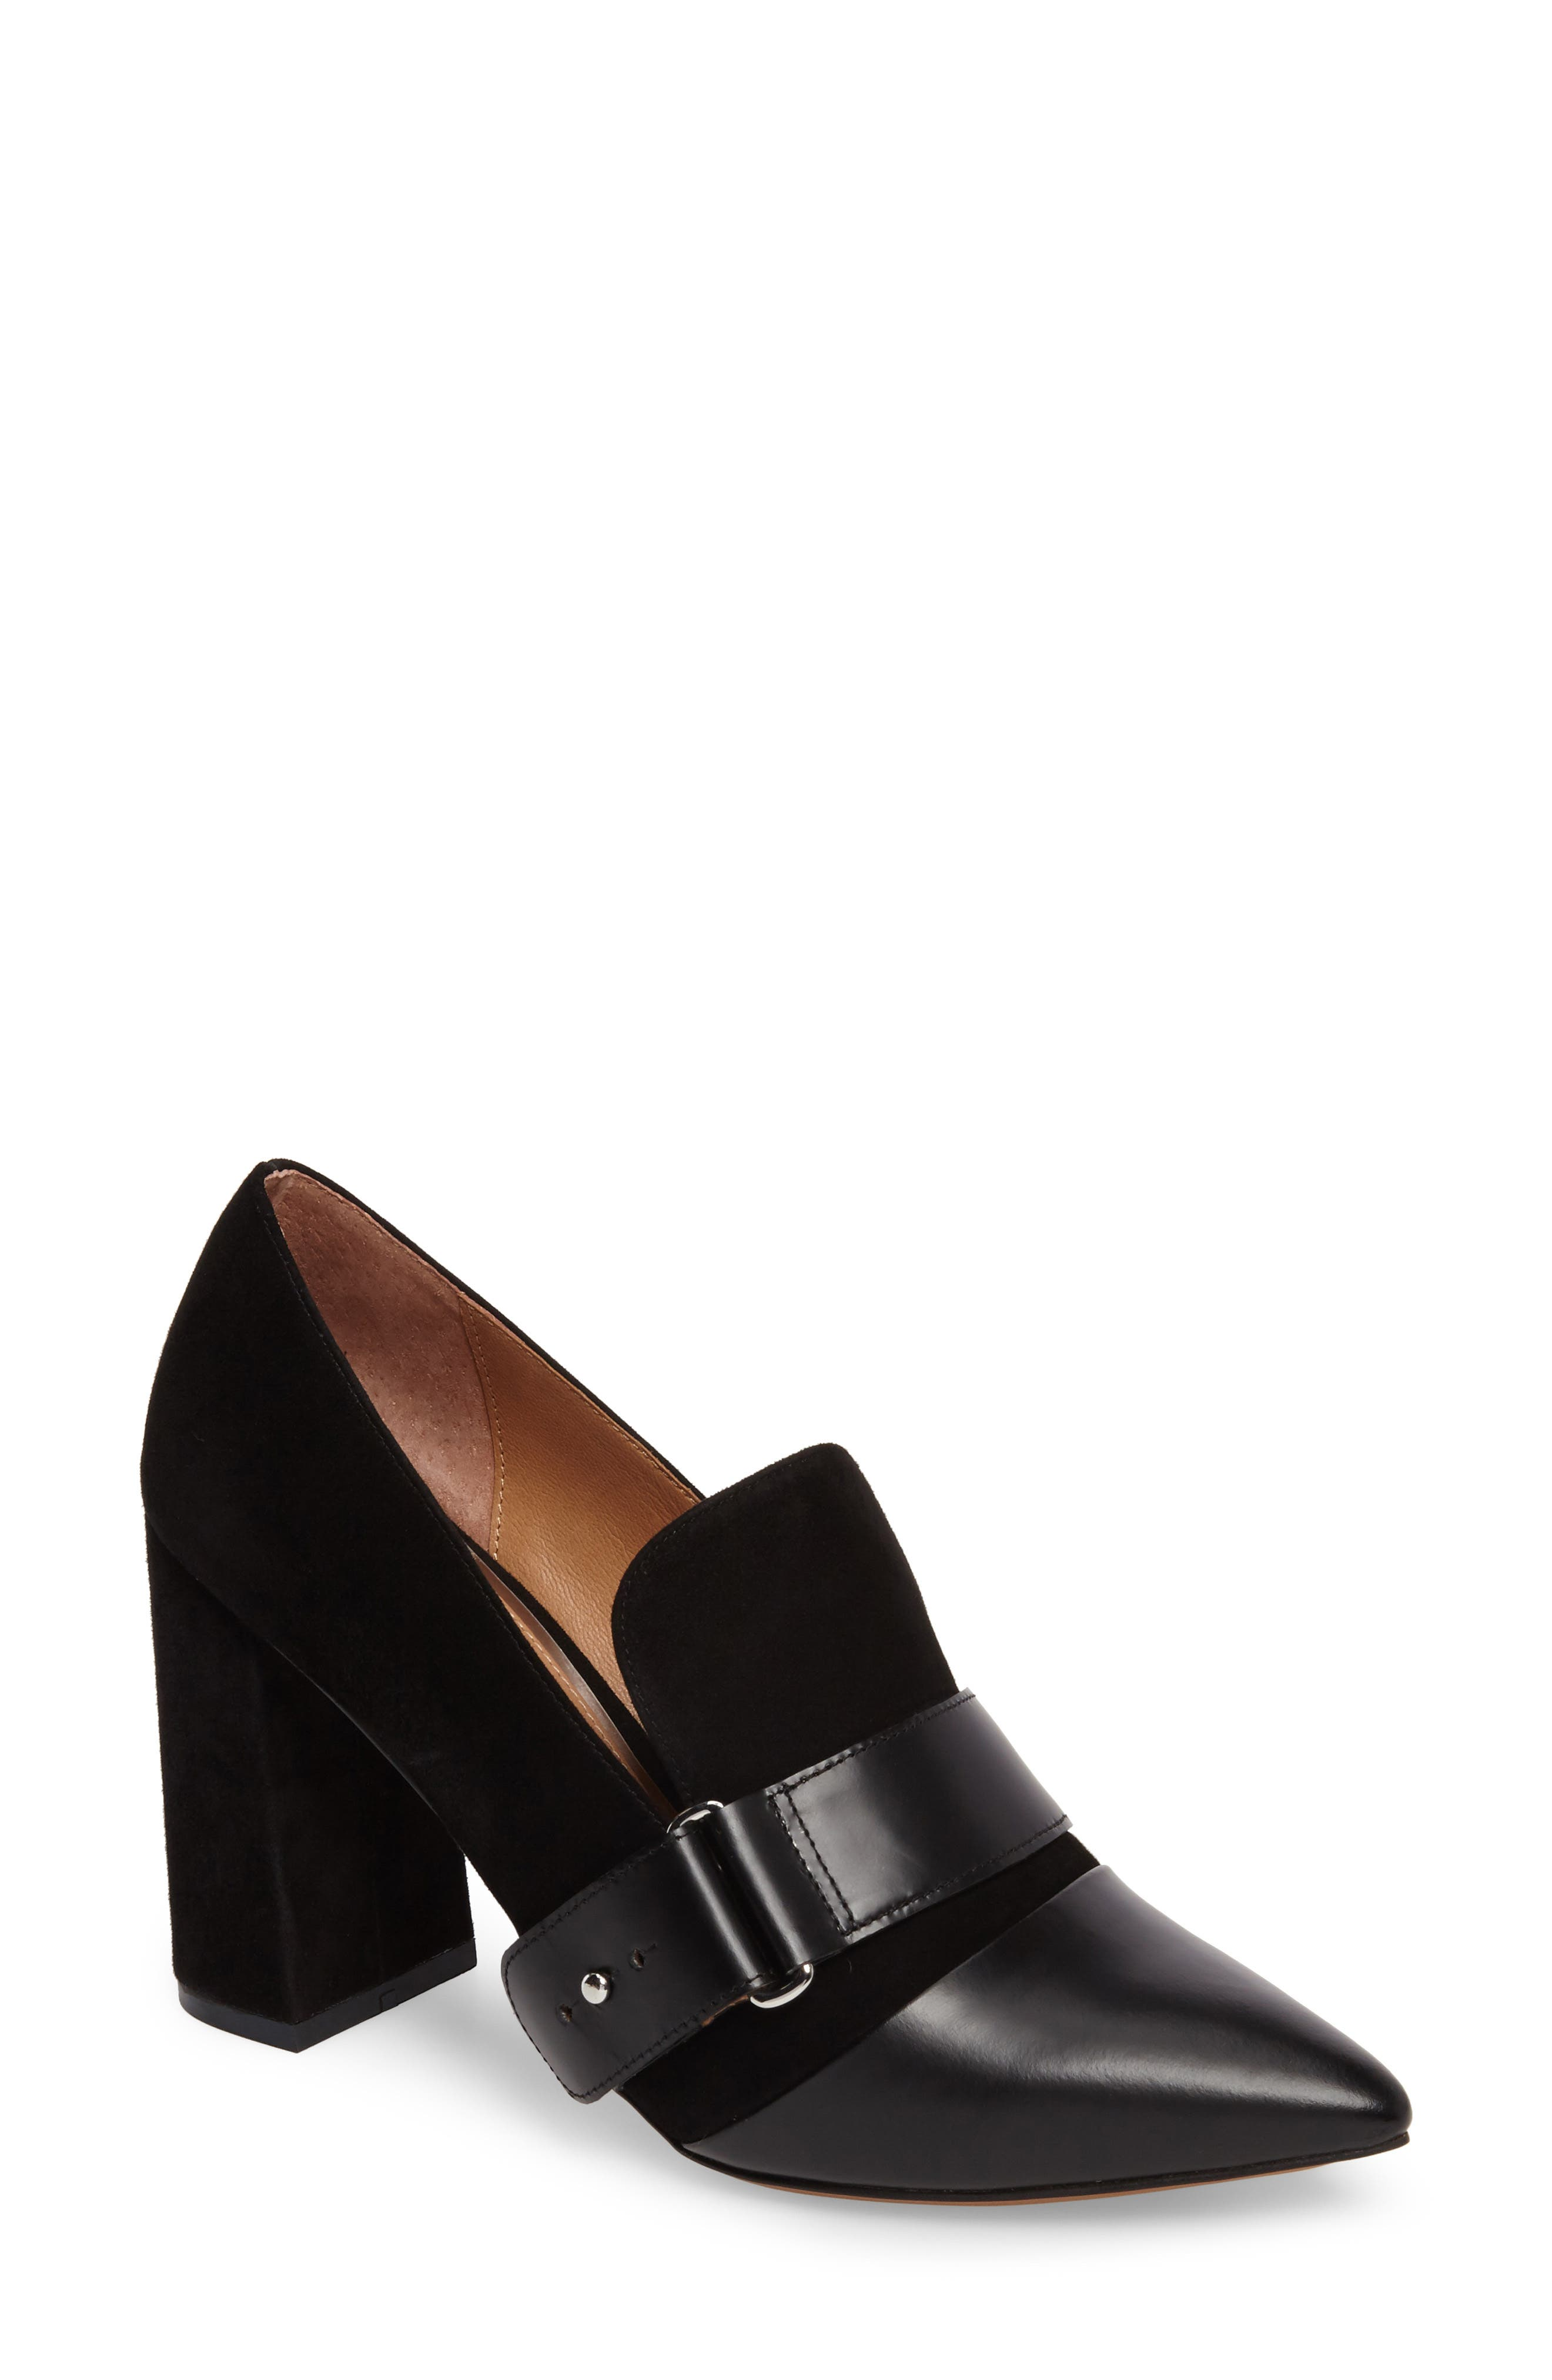 Casidy Buckle Pump,                         Main,                         color, 001